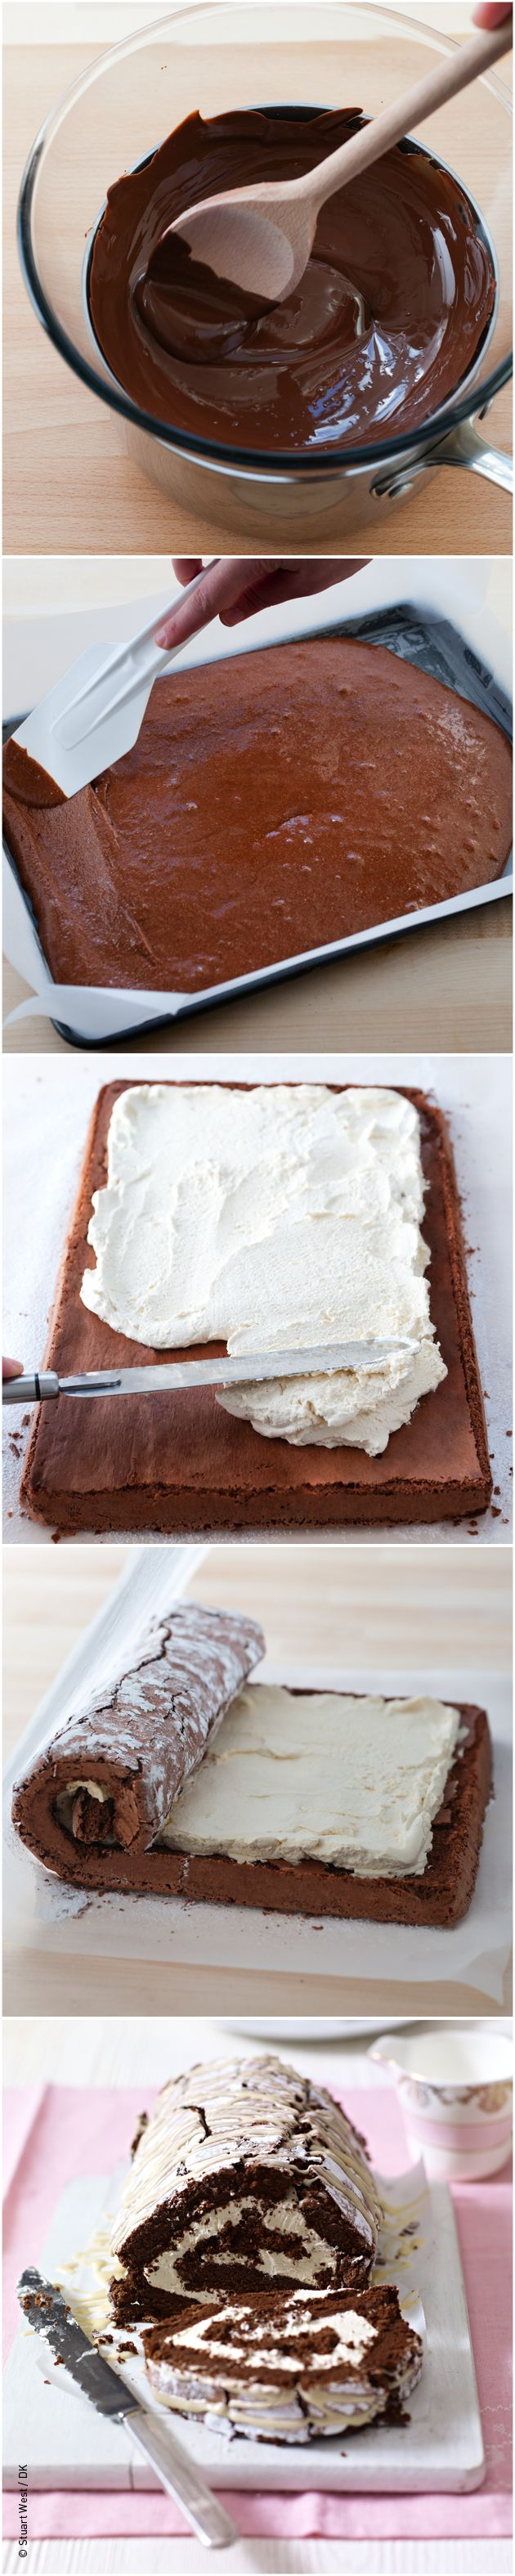 Recipe for Chocolate and Irish Cream Roulade from Mary Berry Cooks the Perfect.  #MaryBerry#PinthePerfect and #MaryBerry